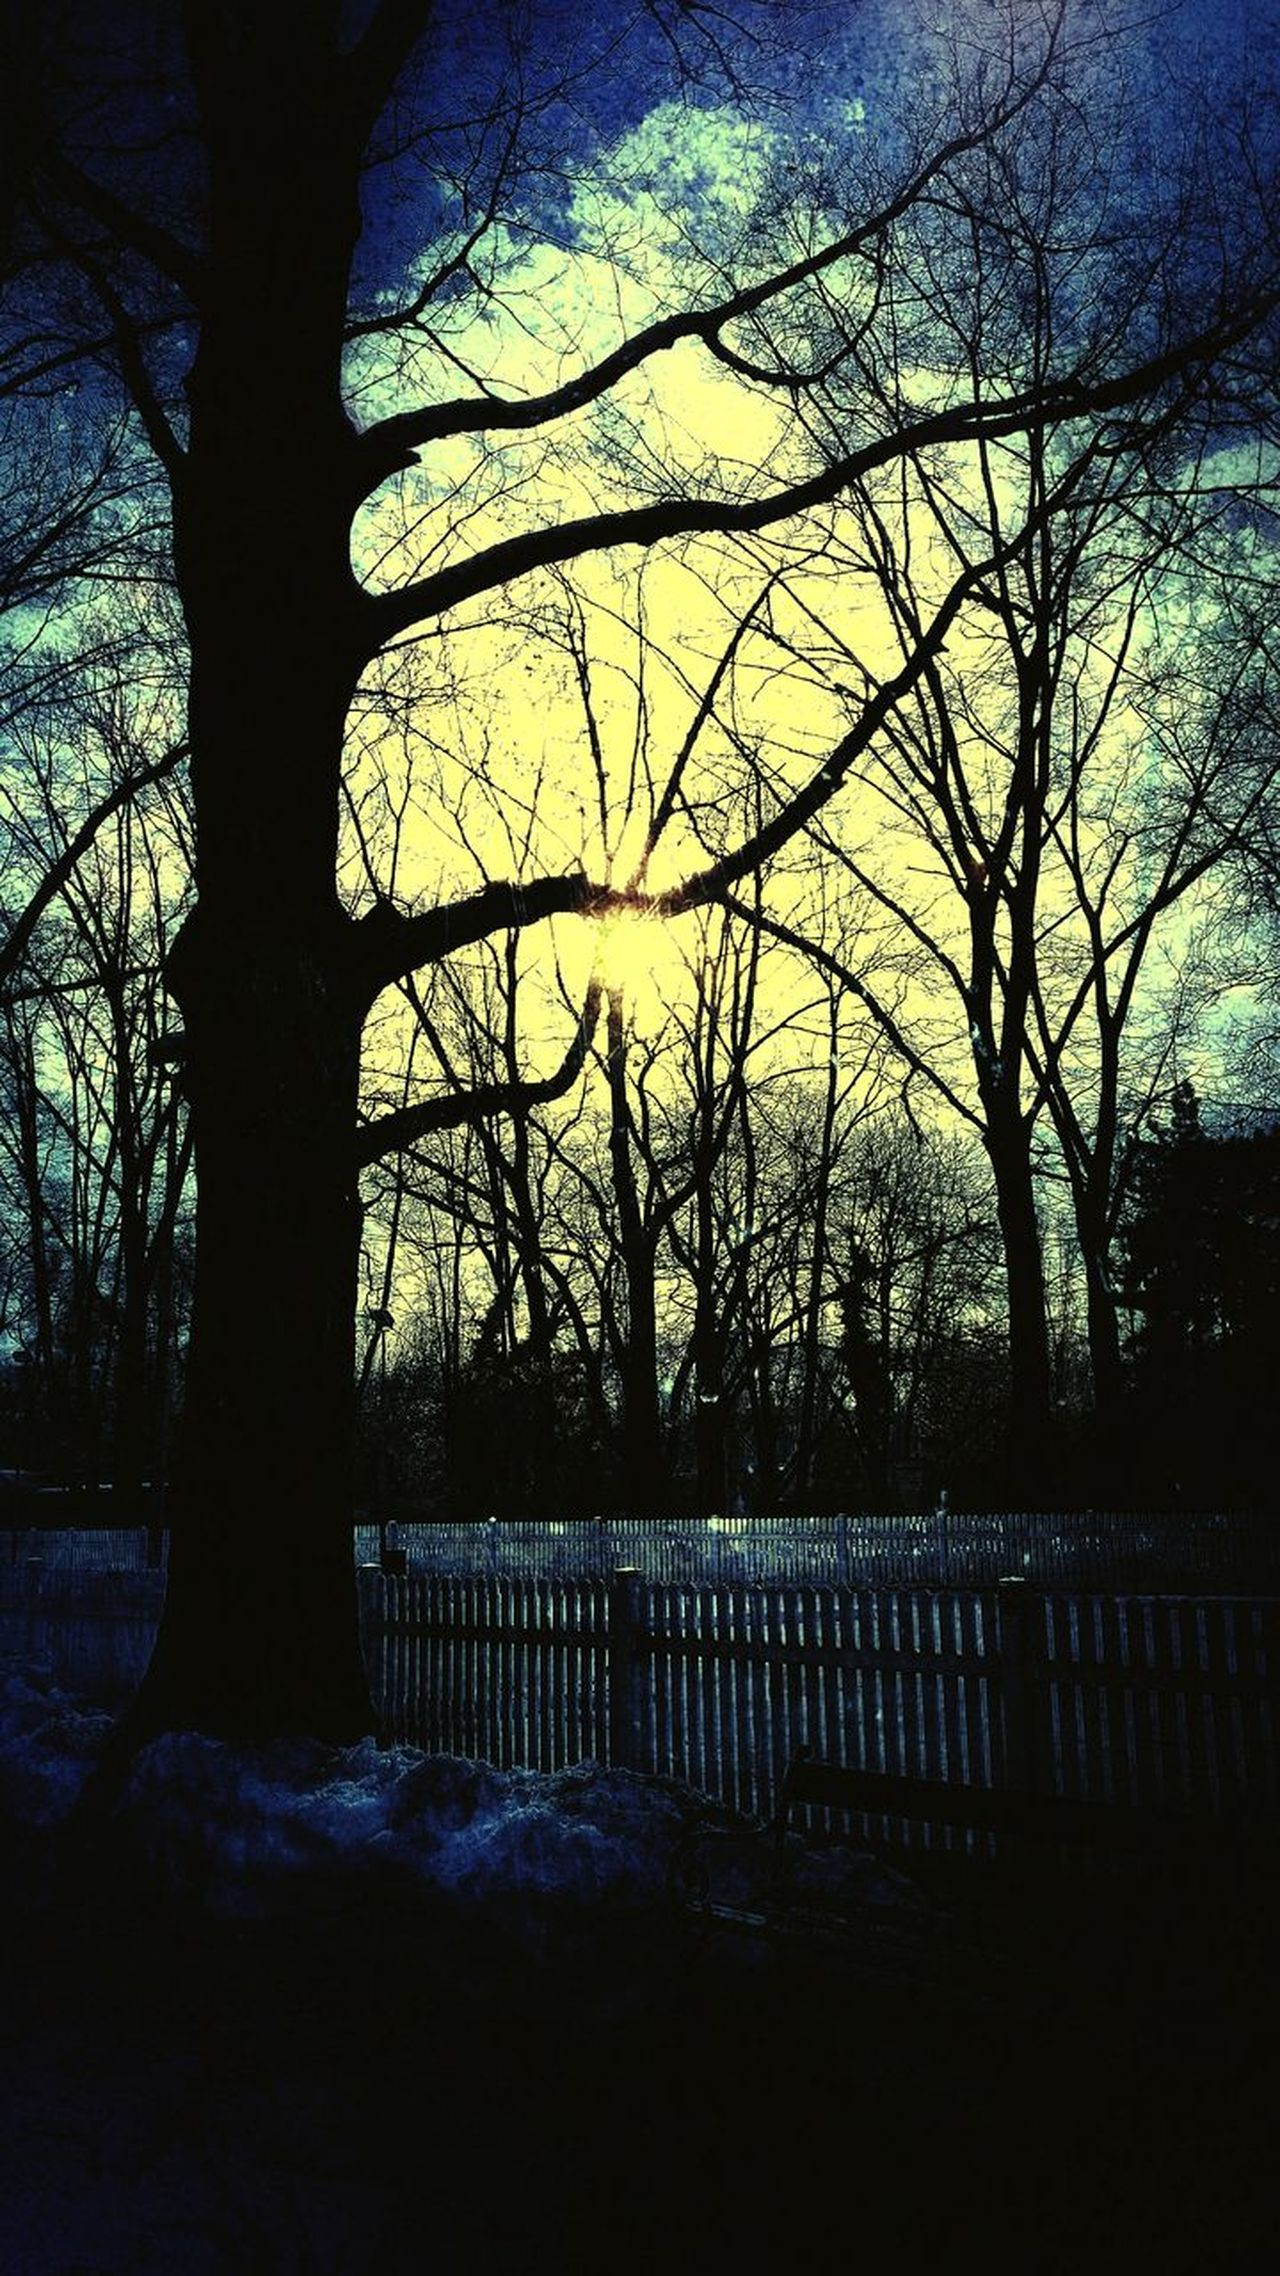 Tree Sunset Silhouette Sky No People Outdoors Nature Water Close-up Beauty In Nature Day Vintage Photo Grungy Textures Grunge Sunlight Hot Sky Scenics Sunsets Parc Dramatic Sky Tree Nature Parks And Recreation Winter Cloud - Sky